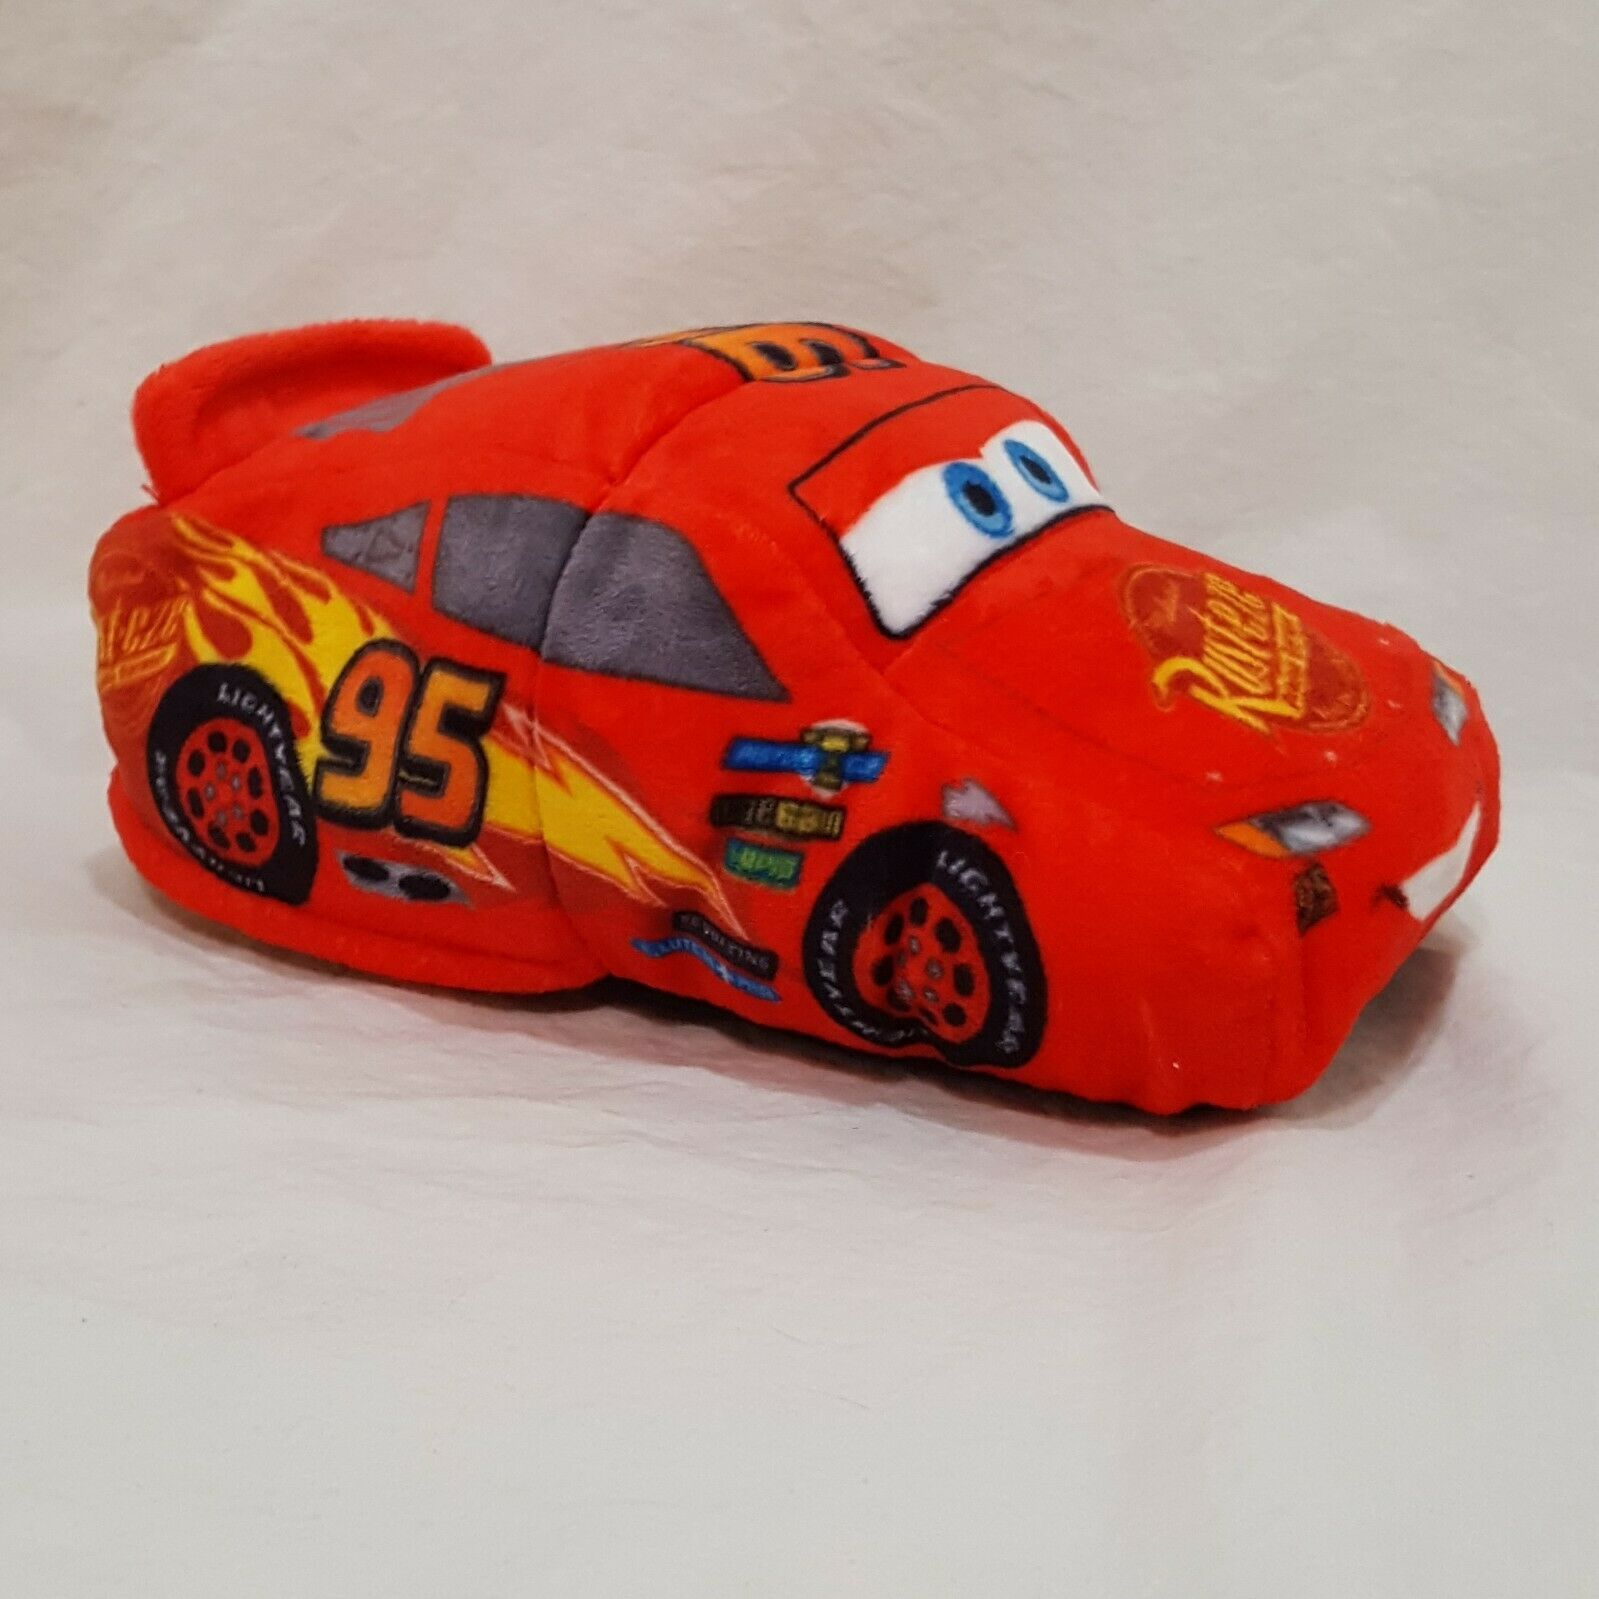 "Disney Cars 3 Reversible Lightning McQueen Cruz Car 8"" Plush Stuffed Toy"